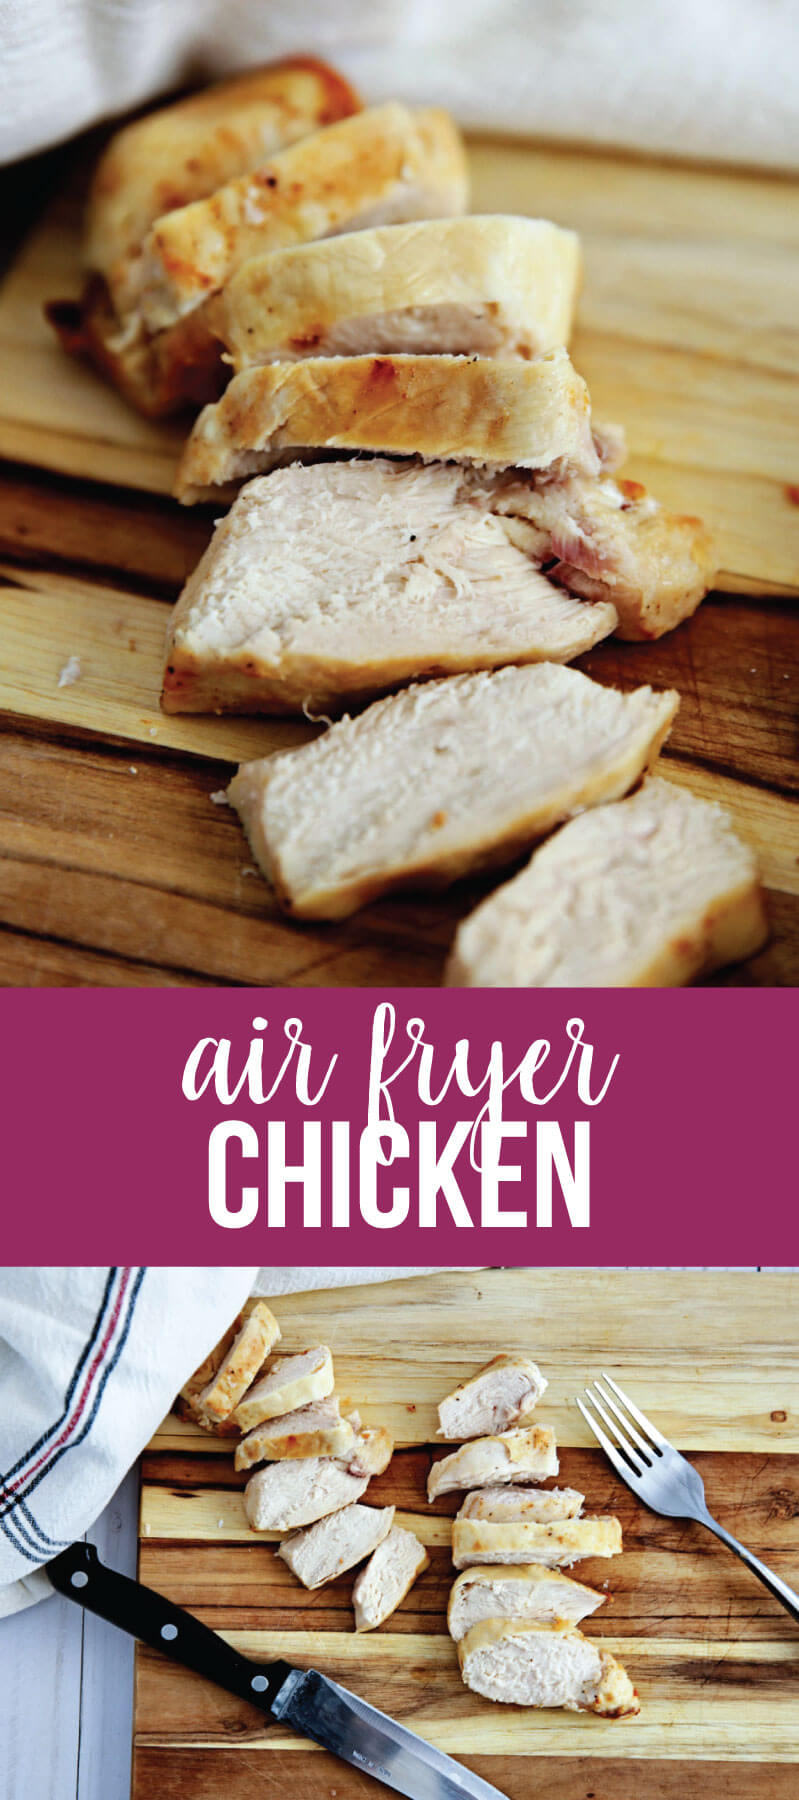 Air Fryer Chicken - learn how to make chicken in an air fryer. It's quick, easy and delicious!